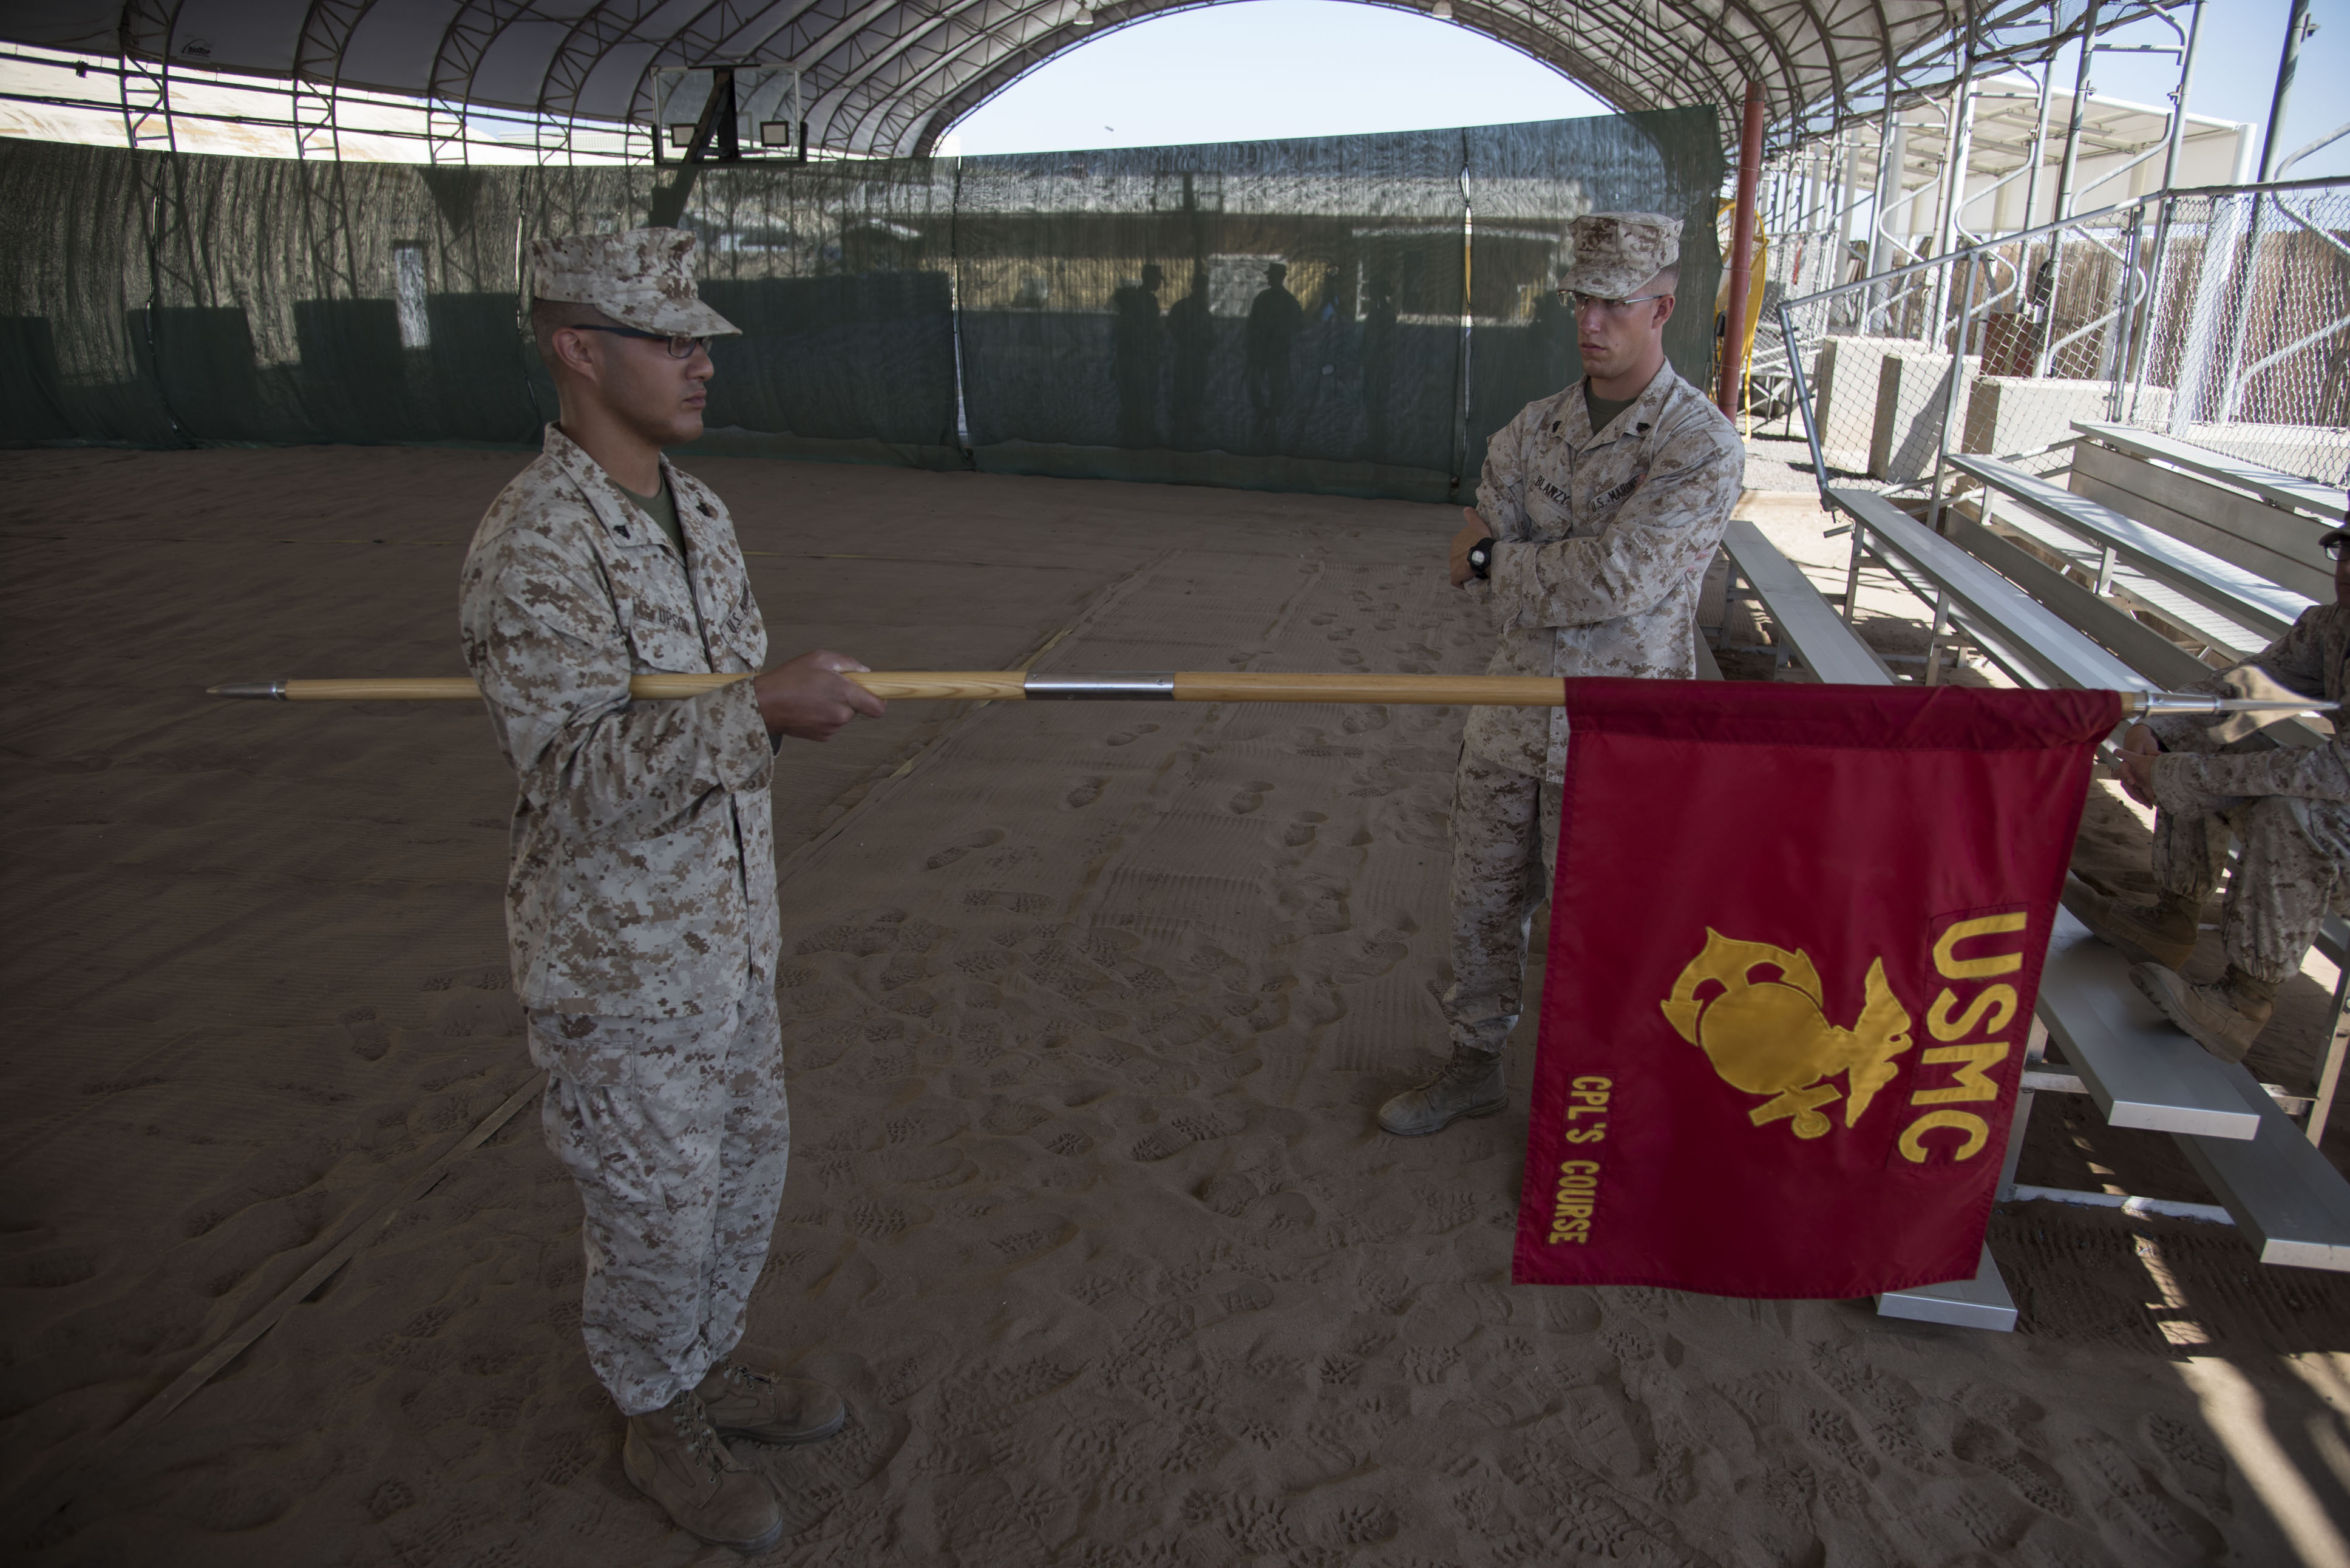 U.S. Marine Corps Sgt. Jacob Blanzy examines Cpl. Devin Upson during a sword and guidon evaluation as part of a Joint Corporals Course hosted by Combined Joint Task Force – Horn of Africa at Camp Lemonnier, Jan. 17, 2018. The Joint Corporals Course is designed to provide junior service members with the knowledge and skills necessary to assume leadership roles of greater responsibility as a non-commissioned officer, as well as strengthen bonds between participating militaries. (U.S. Air National Guard photo by Staff Sgt. Allyson L. Manners)